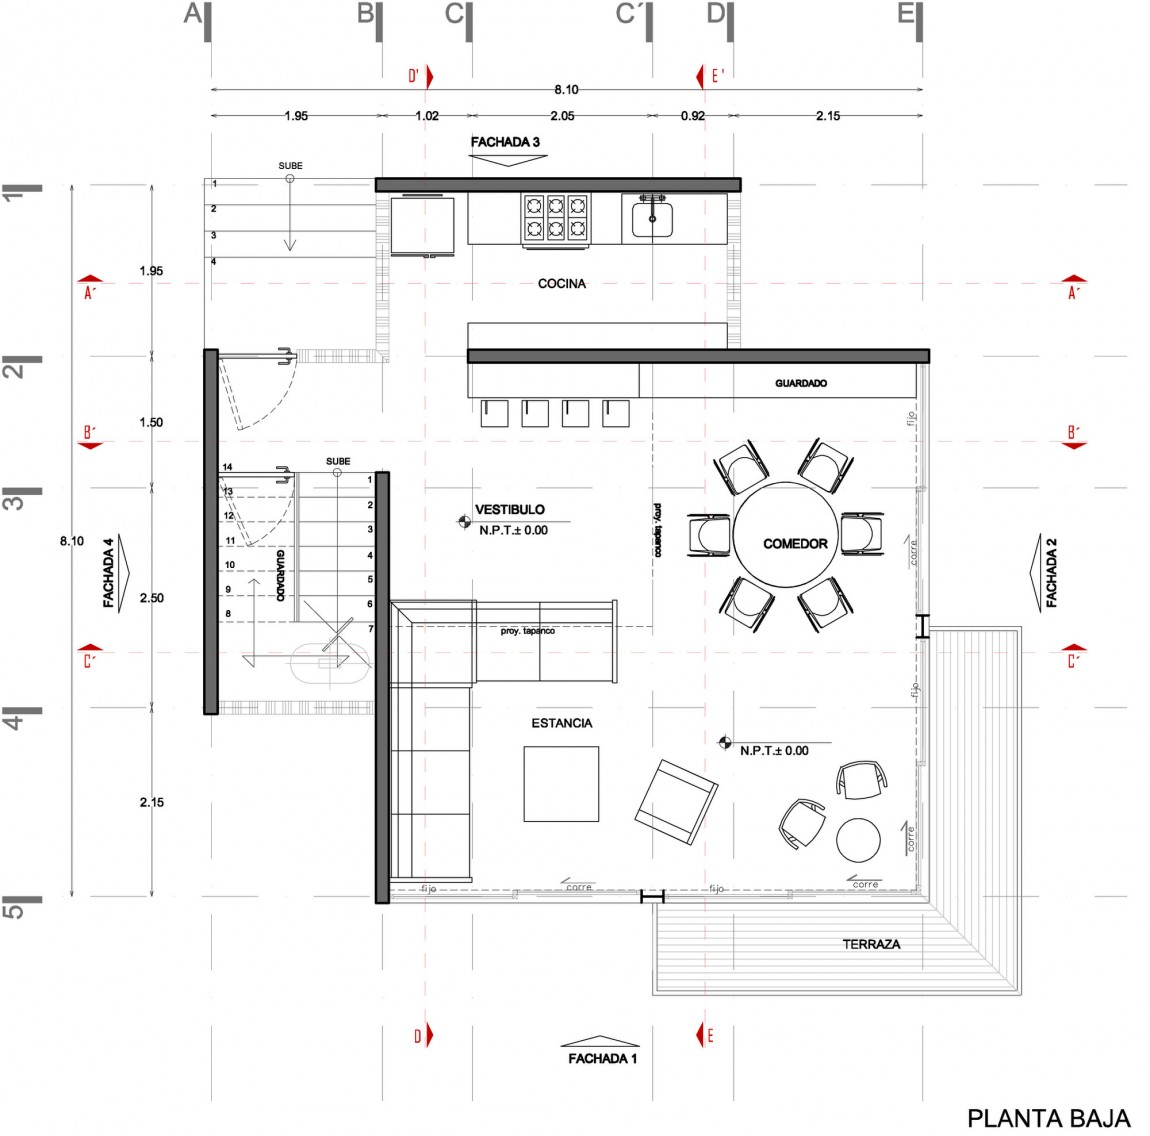 floorplan blueprint groundfloor section plane